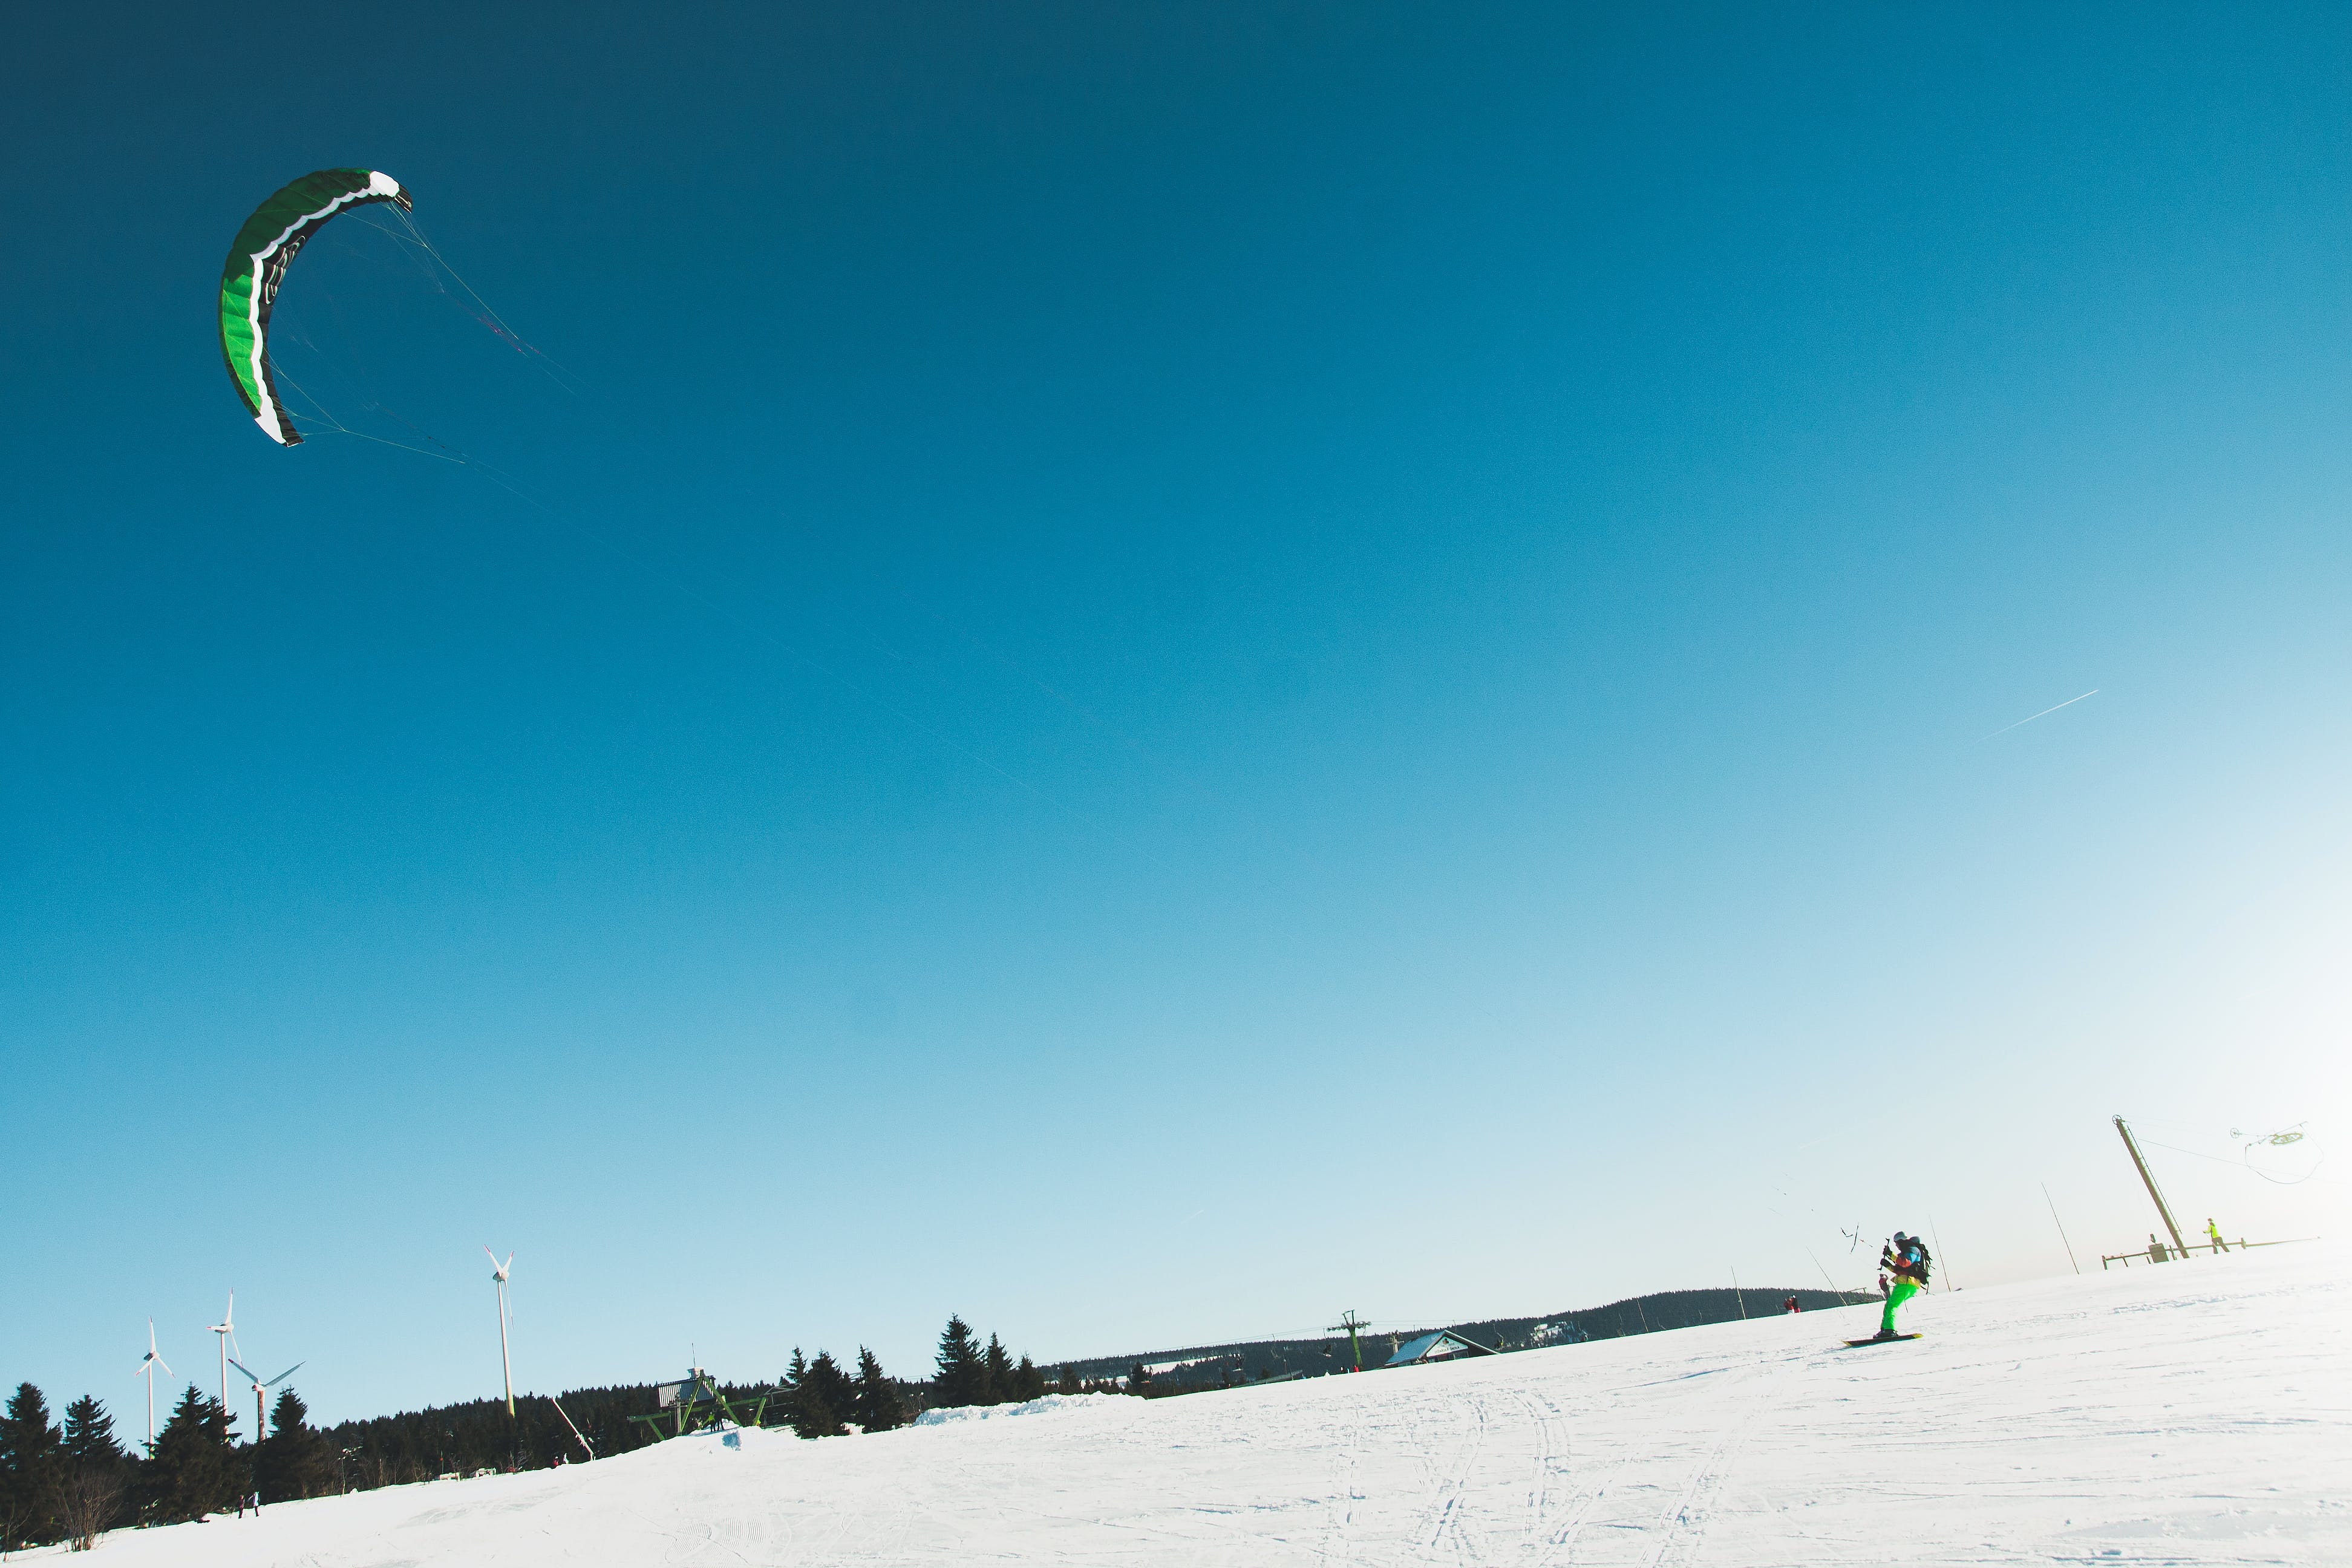 Man Skiing on Snow Covered Landscape